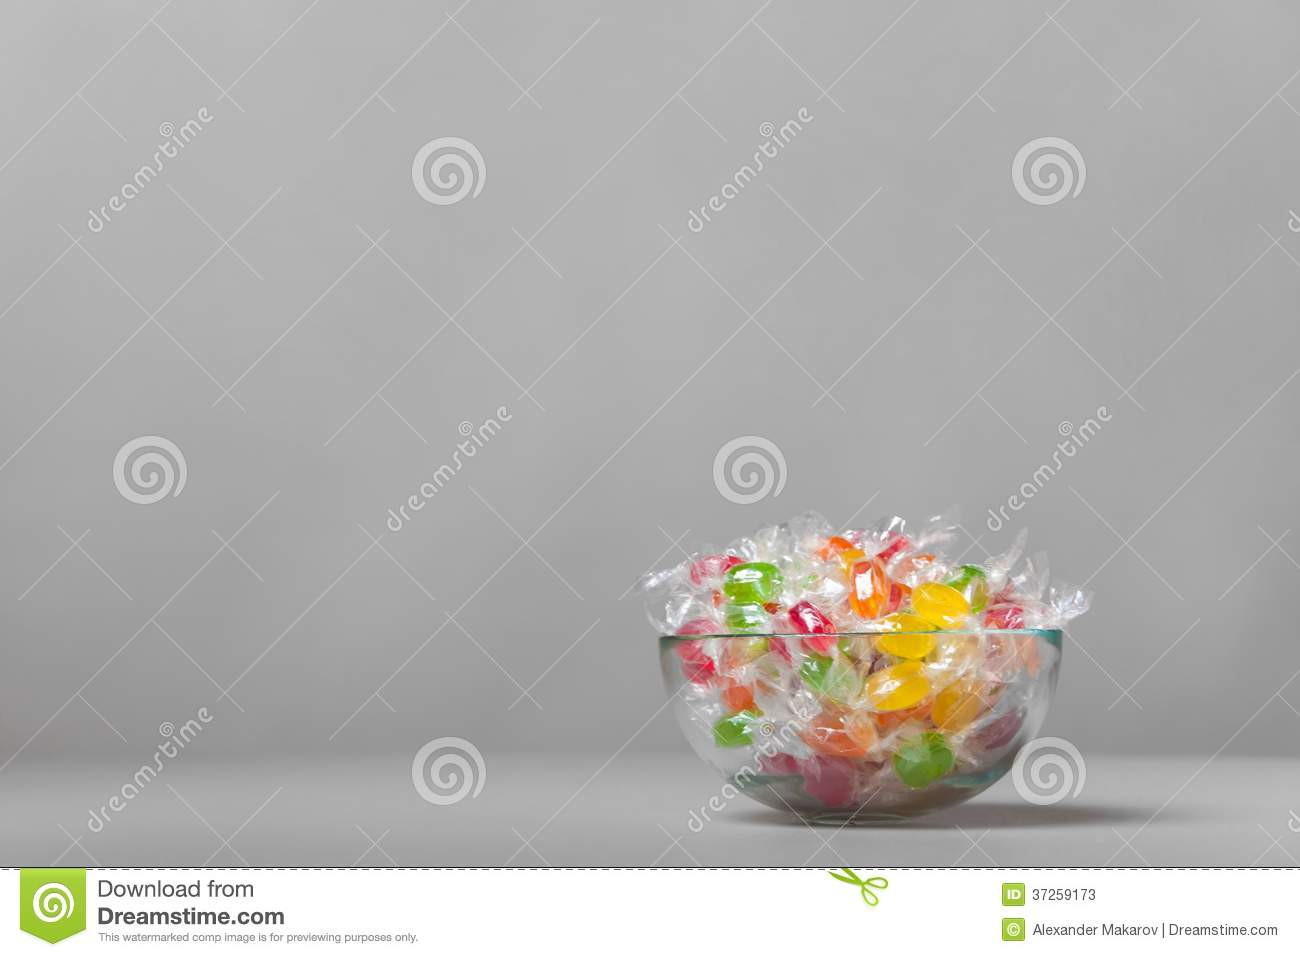 Vase with colour sweets